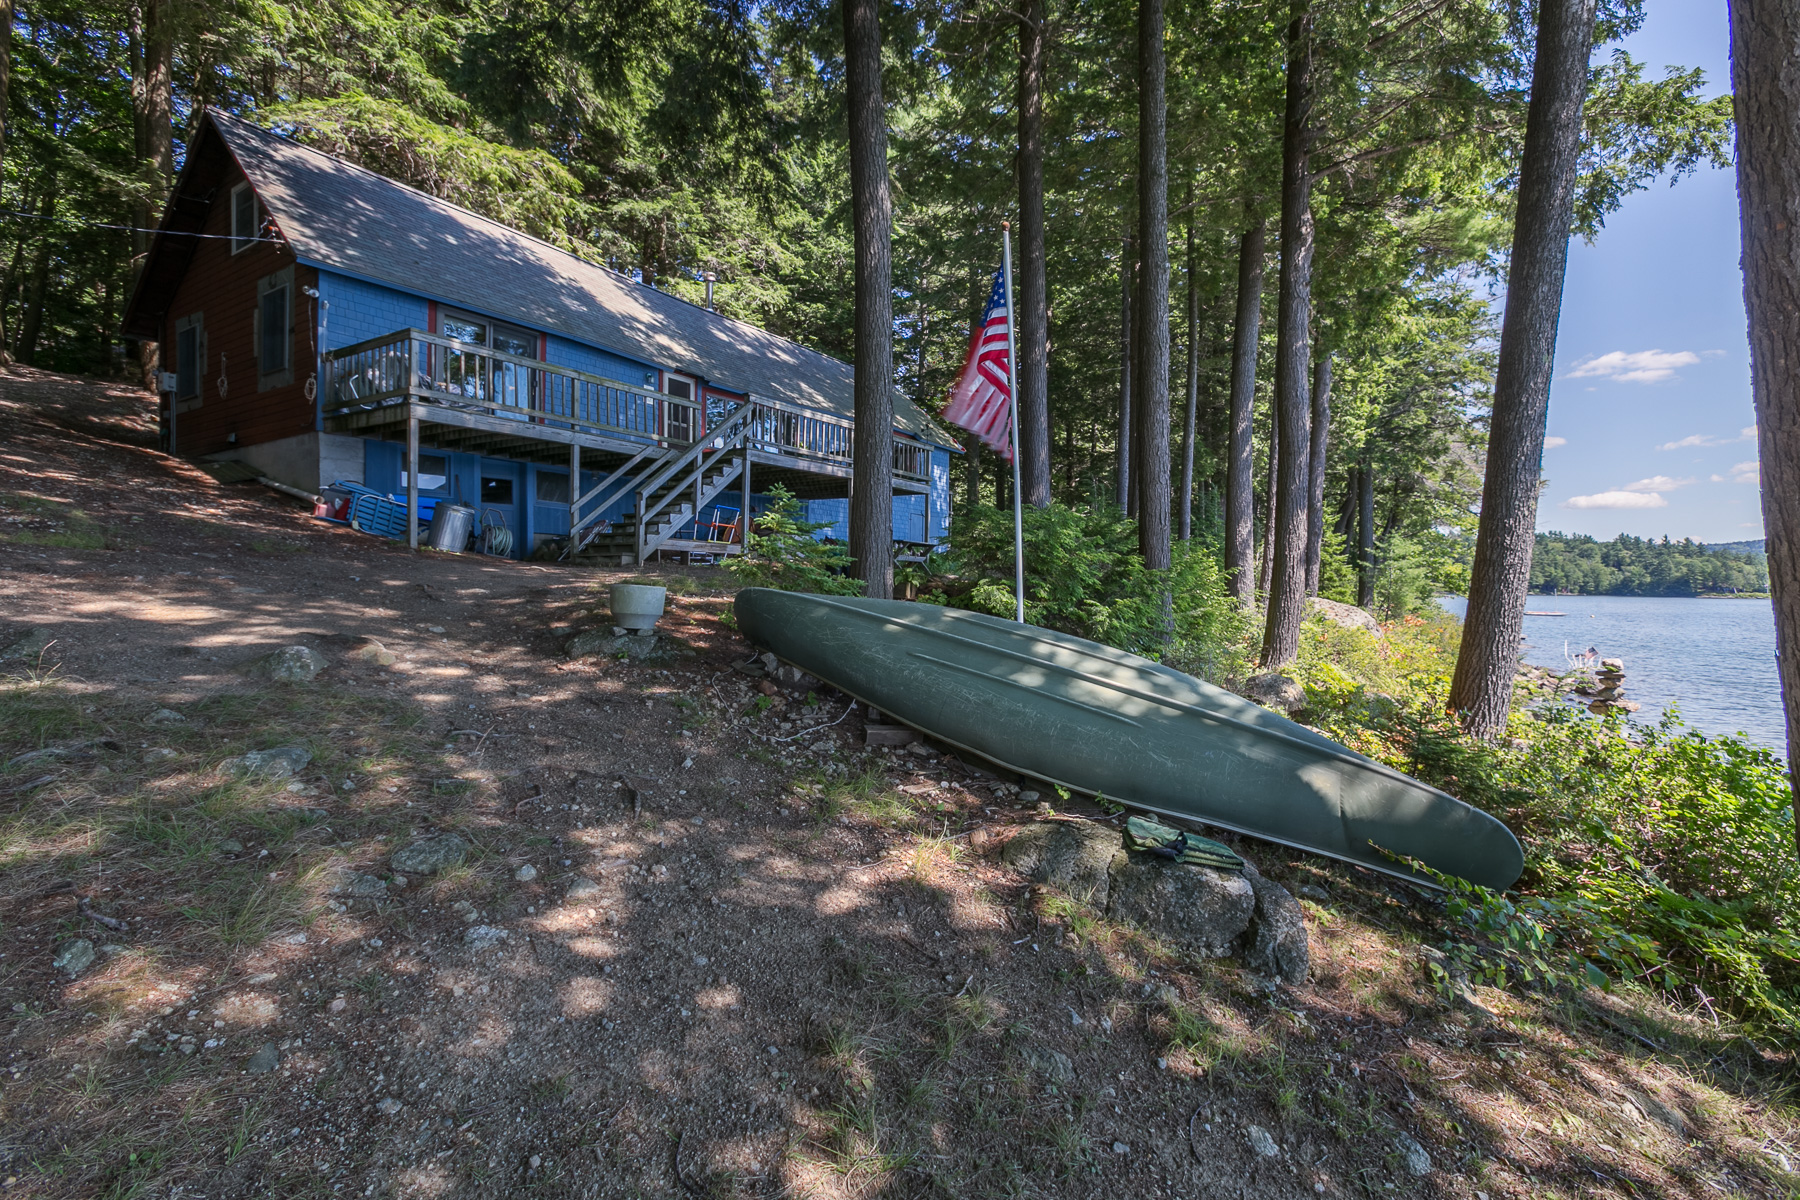 Single Family Home for Sale at 282 Kings Hwy, Hancock Hancock, New Hampshire, 03449 United States